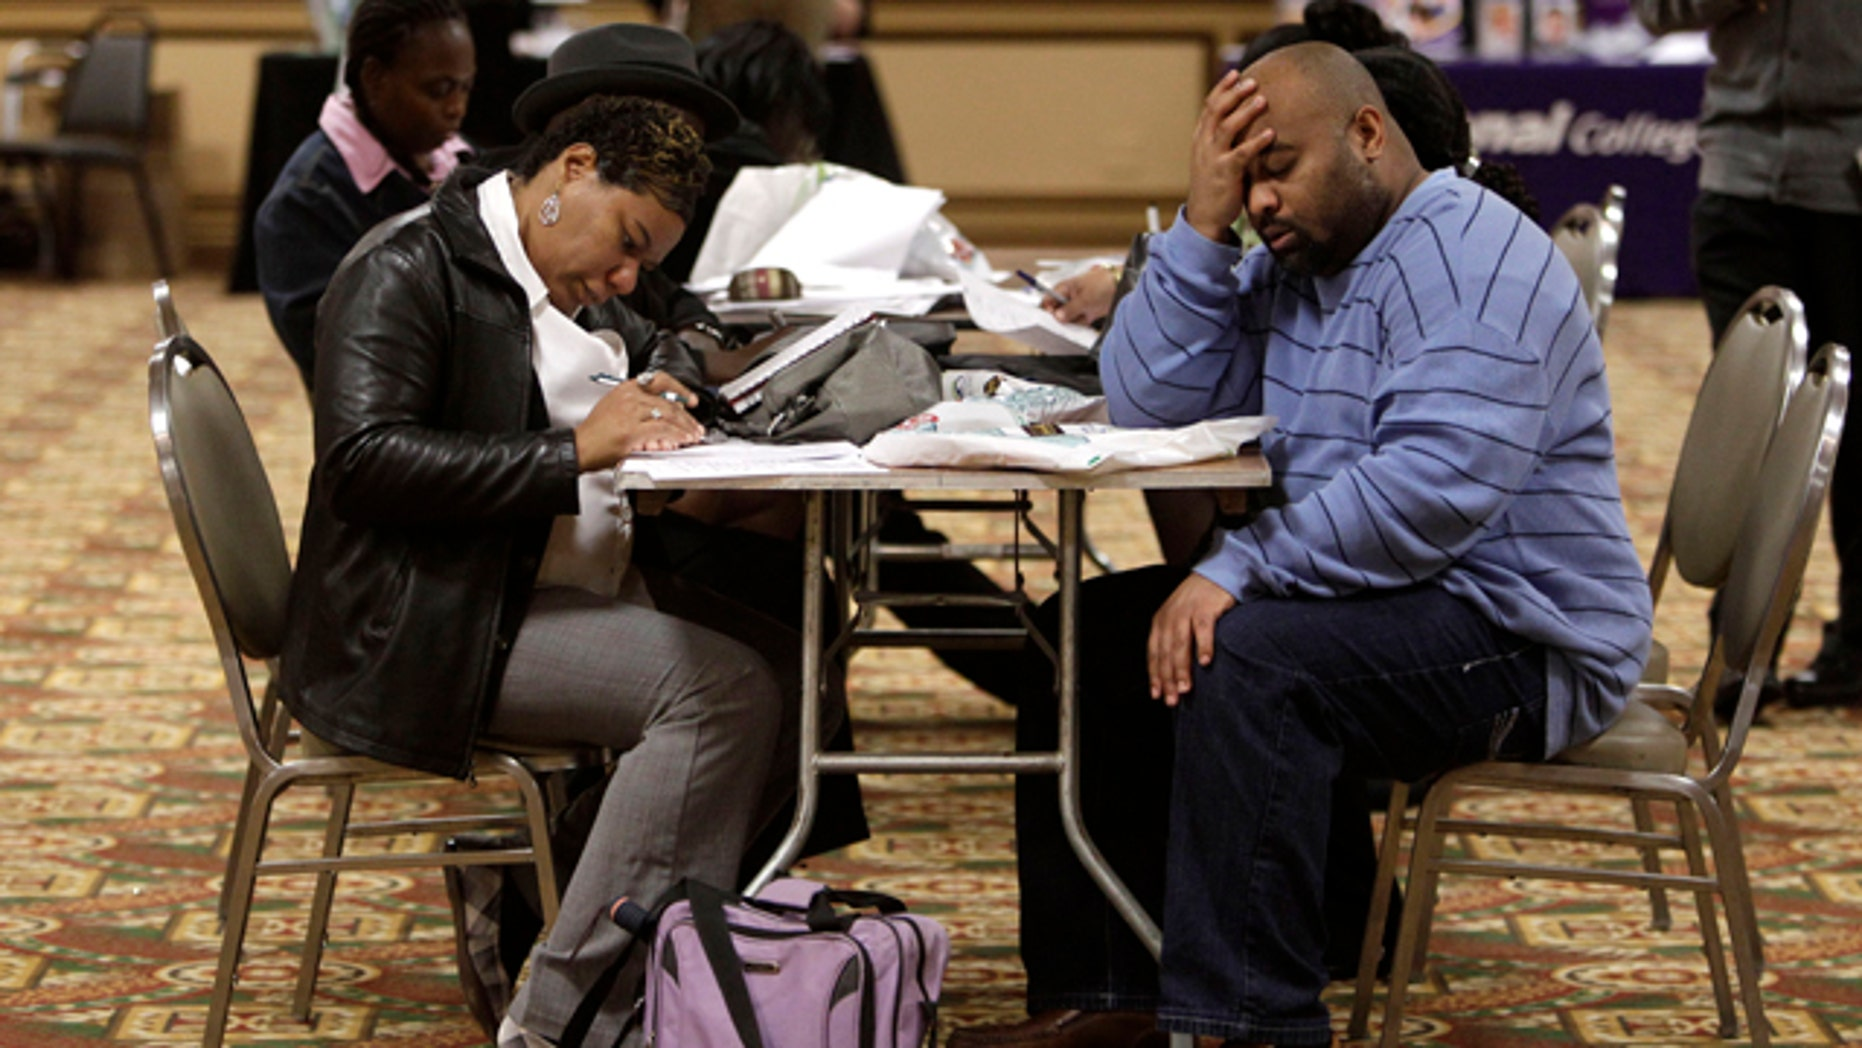 Oct. 26, 2011: Tonya Crenshaw and Kendrick Haraalson fill out applications at a job fair in Brookpark, Ohio. The number of people seeking unemployment benefits dipped slightly last week, though not by enough to suggest that hiring is picking up.